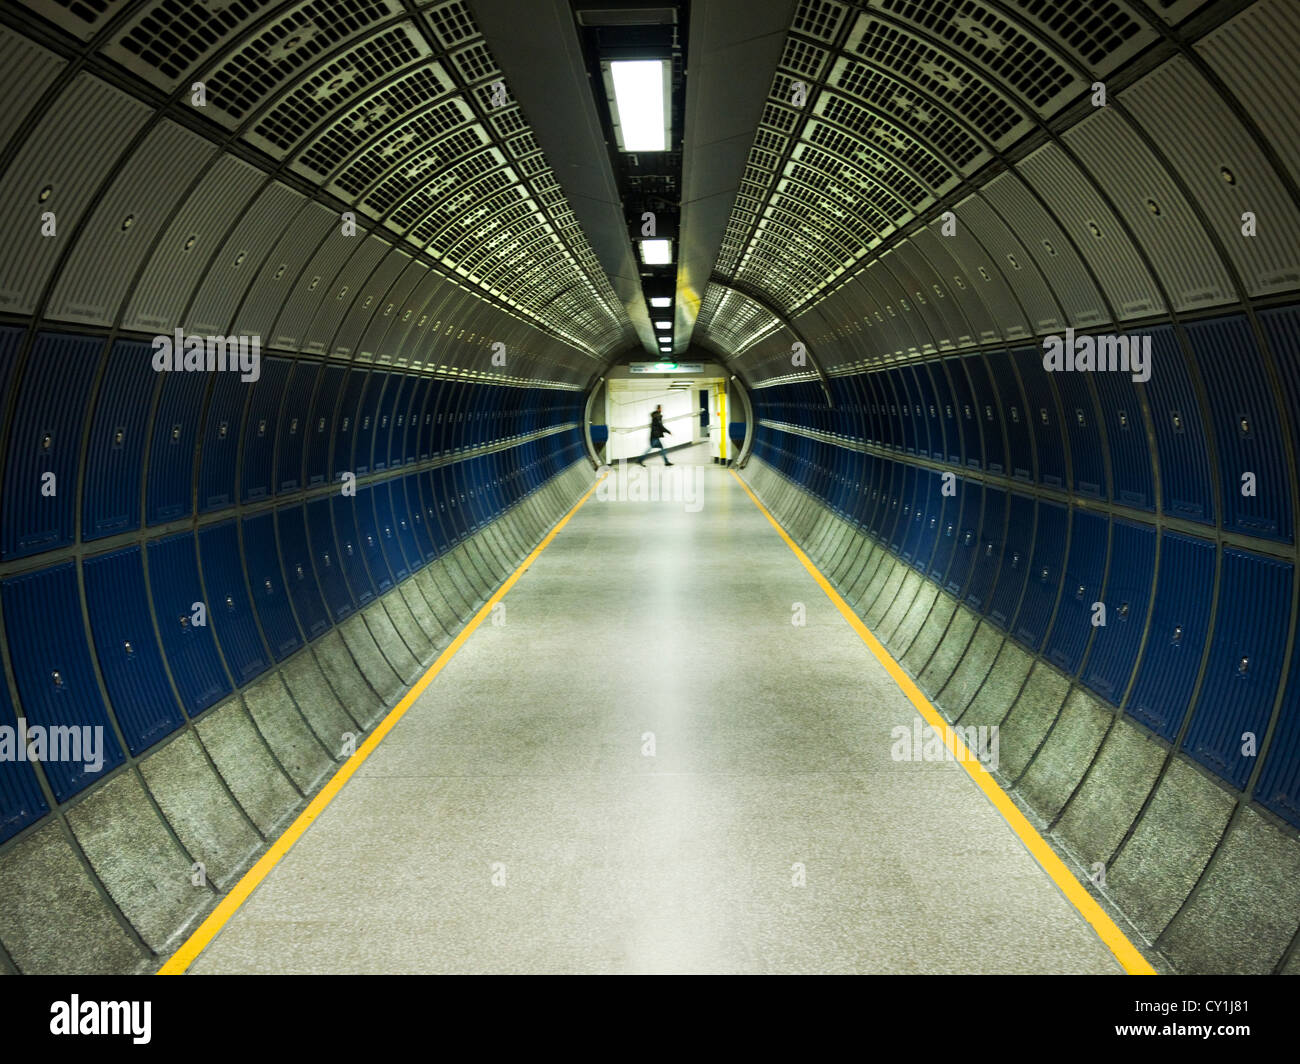 Modern Underground tunnel with lone figure walking across in distance - Stock Image